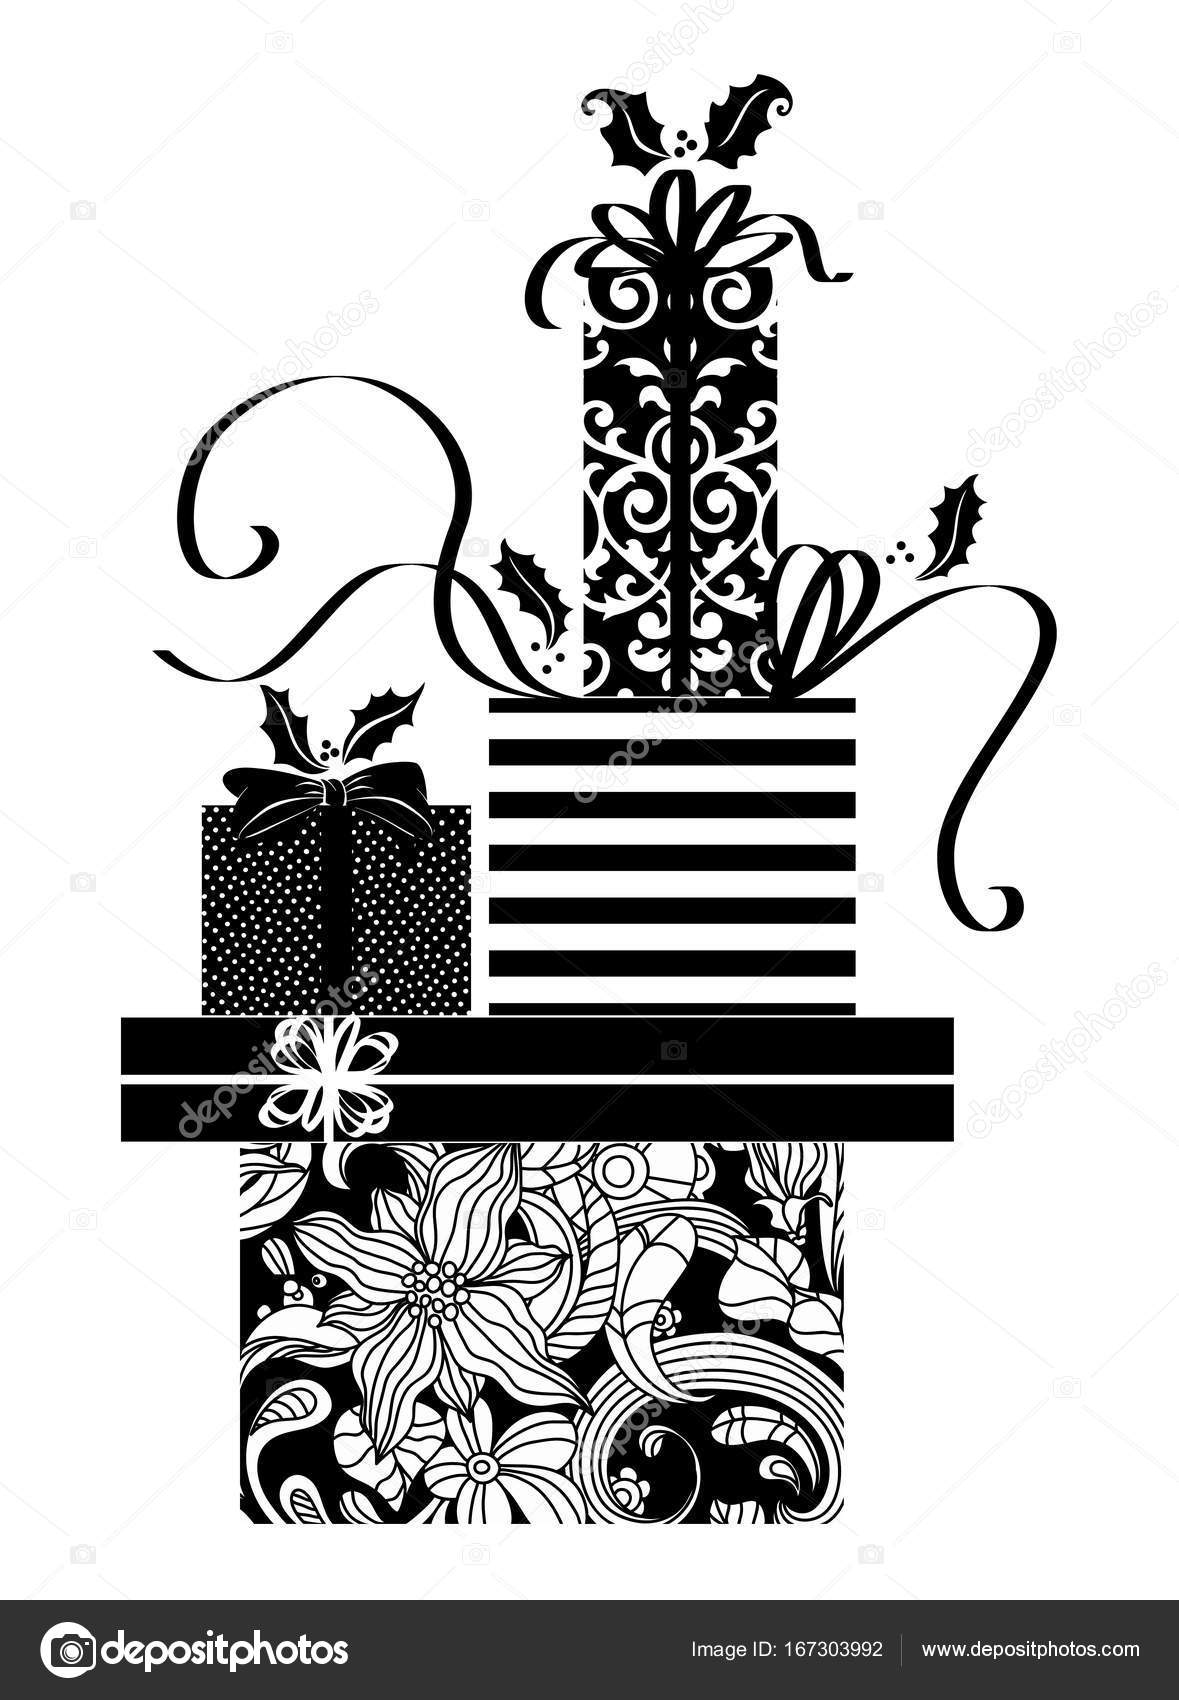 Drawings Of Christmas Presents.Stack Of Presents Drawing Black And White Drawing Of A